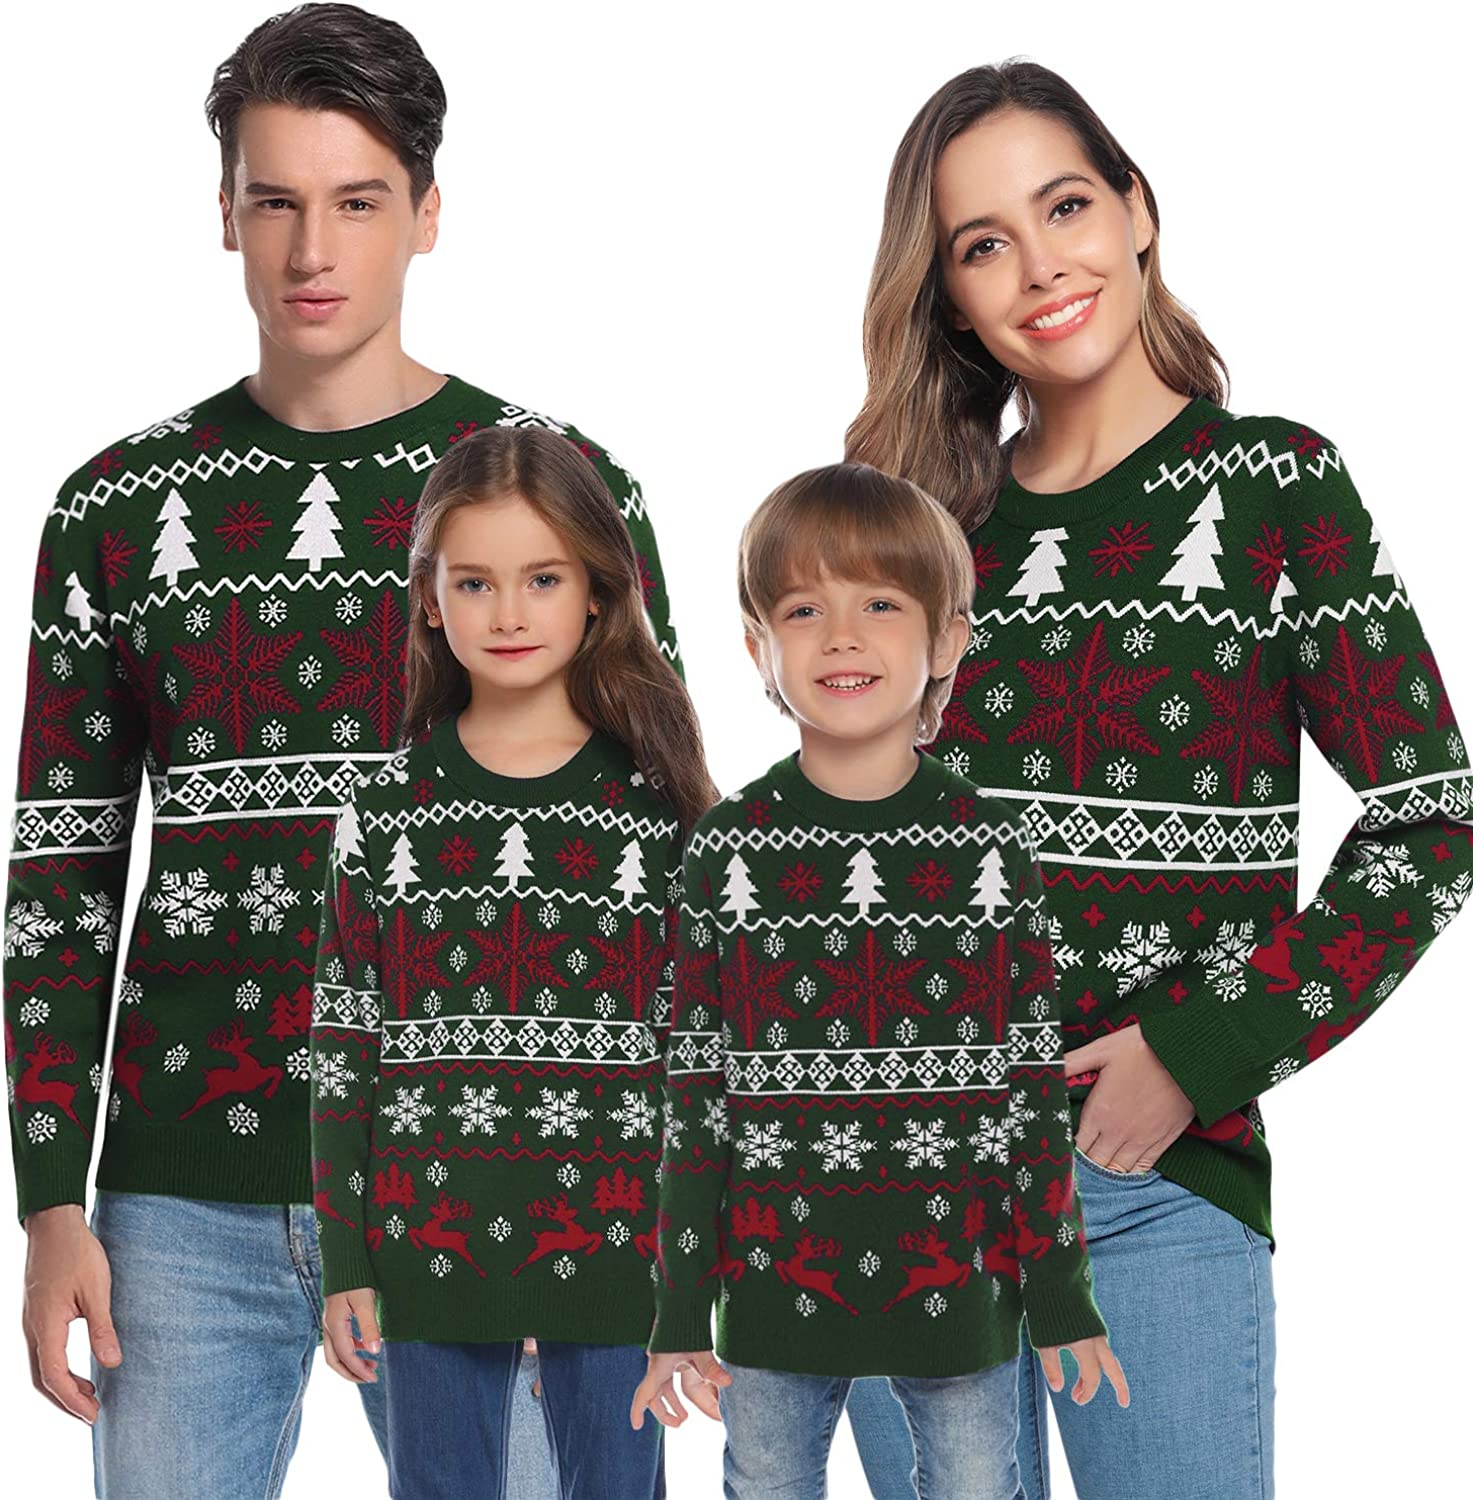 Amazon Com Hawiton Family Matching Ugly Xmas Sweaters Funny Long Sleeve Christmas Reindeer Sweater Festive Pullover Clothing